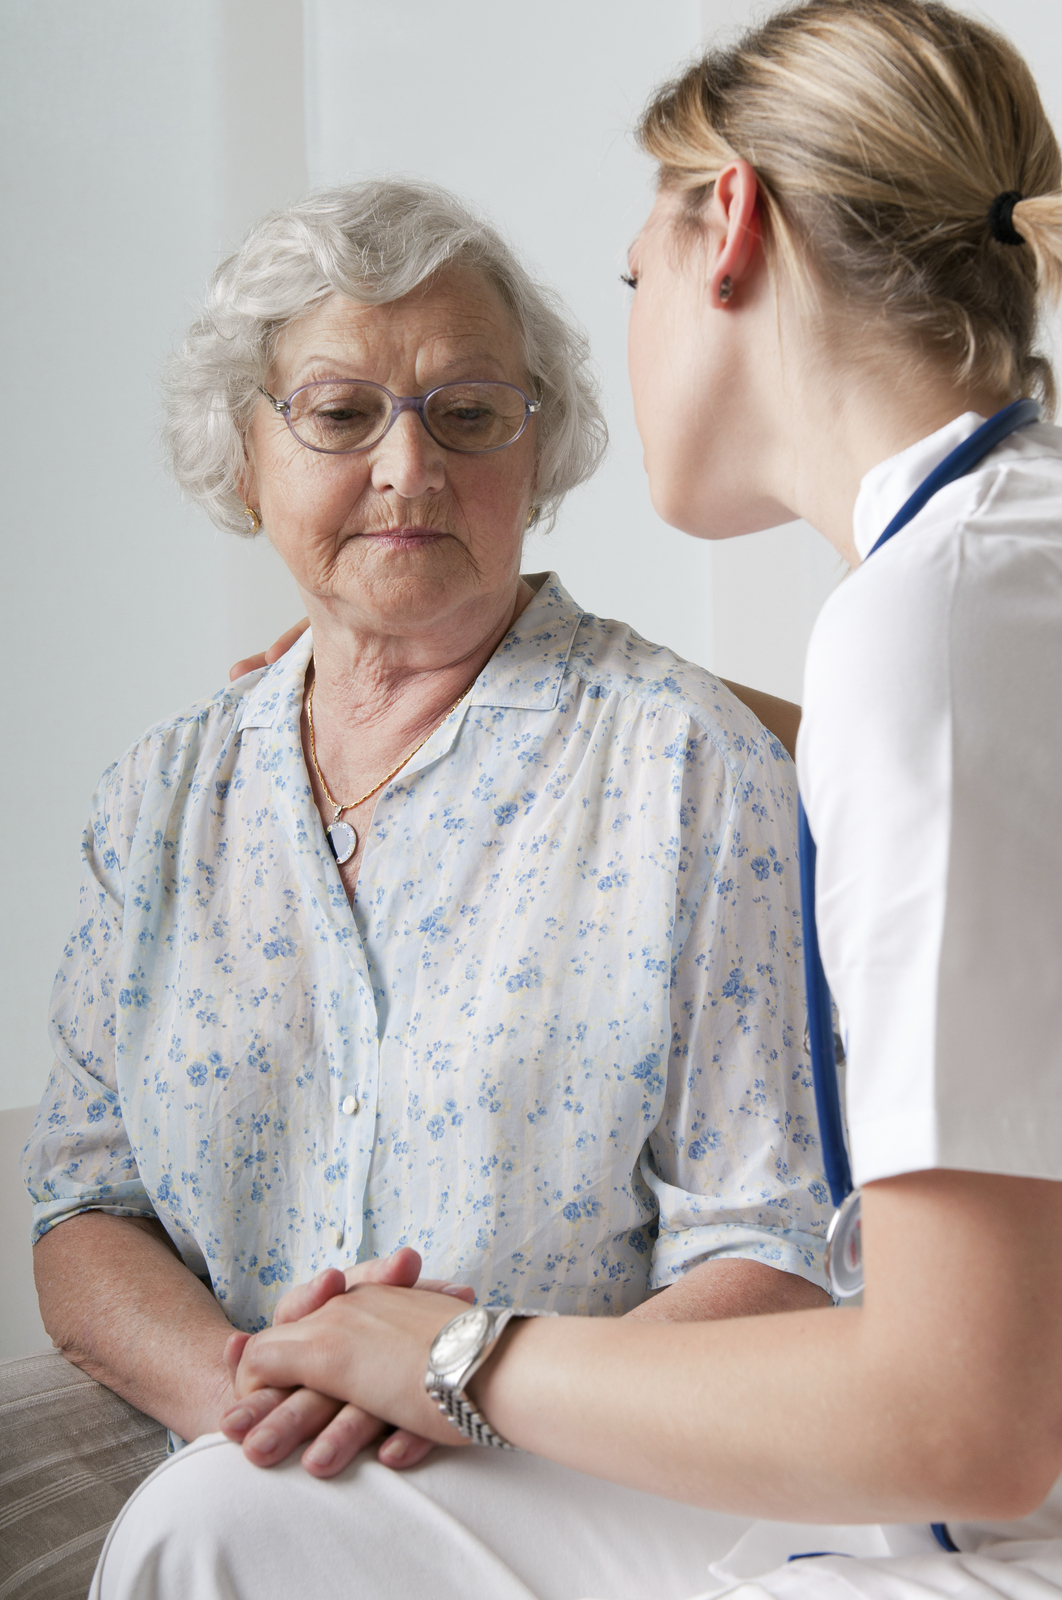 senior woman going through stress and trauma receiving care from a nurse